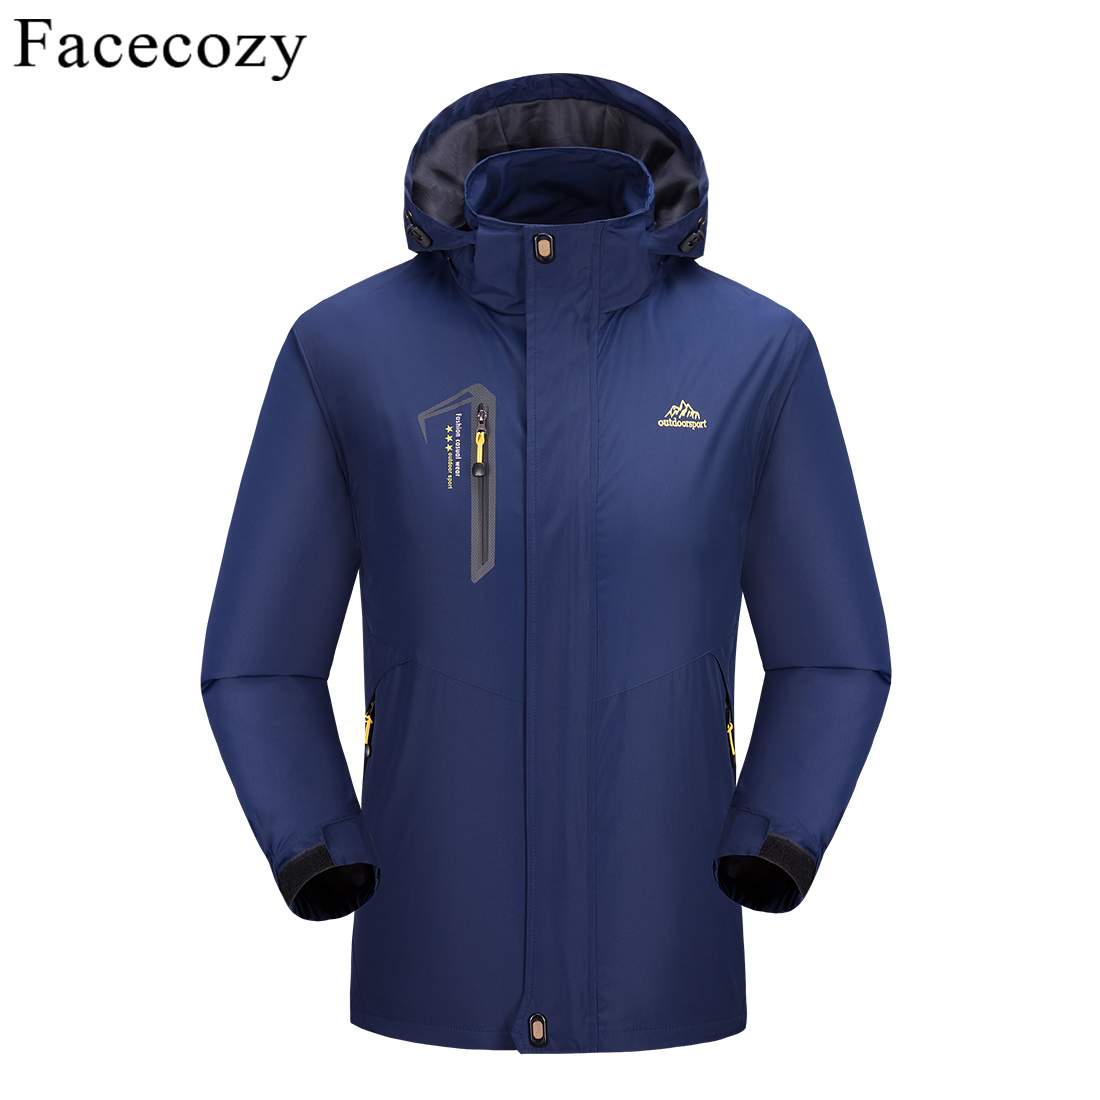 Facecozy 2019 Spring Summer Men Softshell Fishing Jackets Male Outdoor Single Layer Hiking Fishing Clothing For Climbing Camping